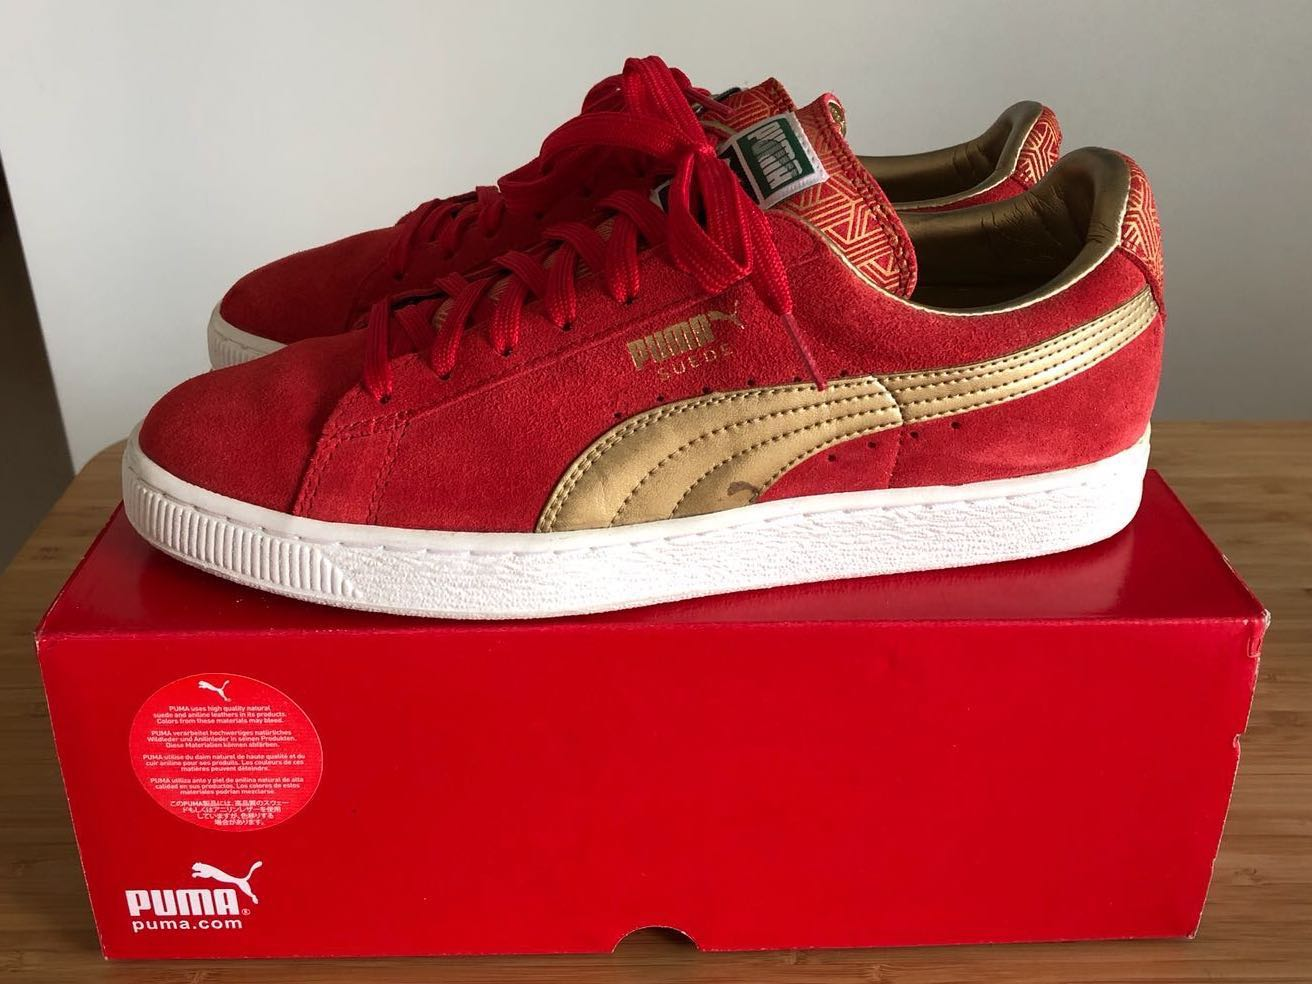 new style 12703 81df8 PUMA red suede - LIMITED EDITION!